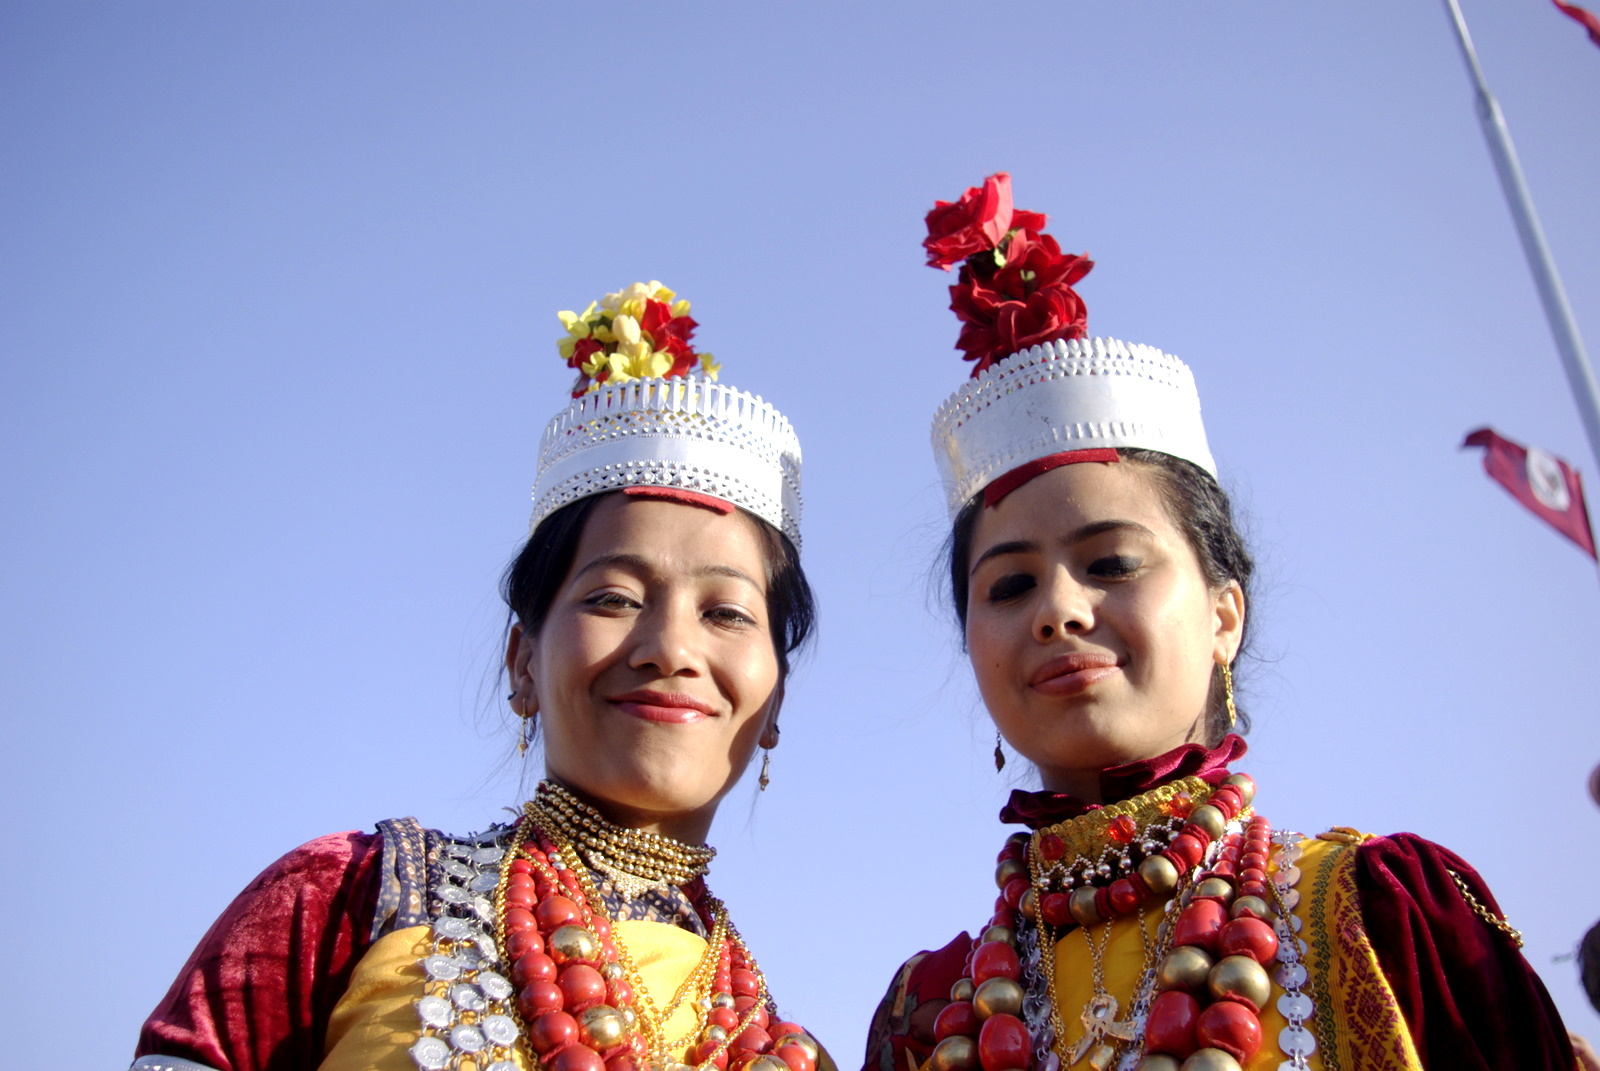 Women dressed up for Ka Pomblang Nongkrem festival in Meghalaya